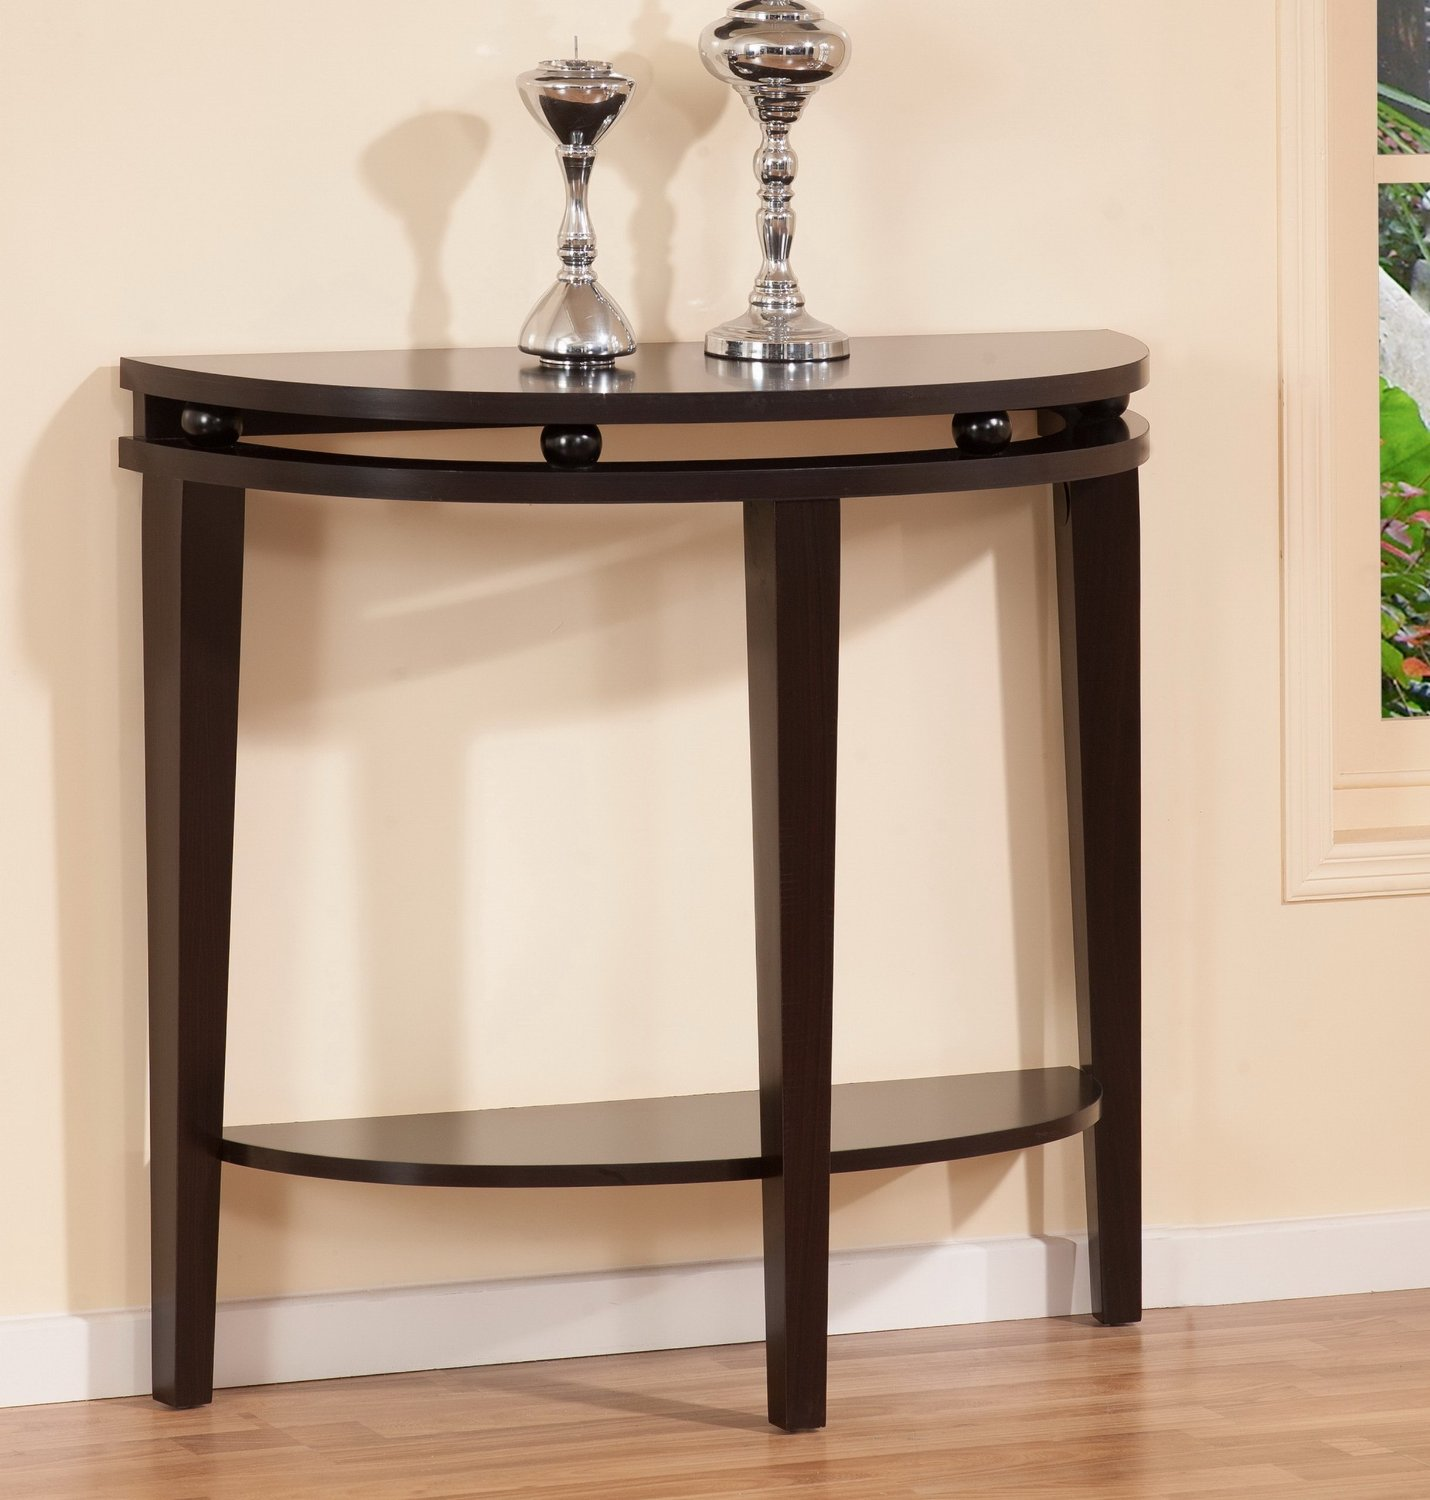 Half Moon Table half moon entry table | homesfeed